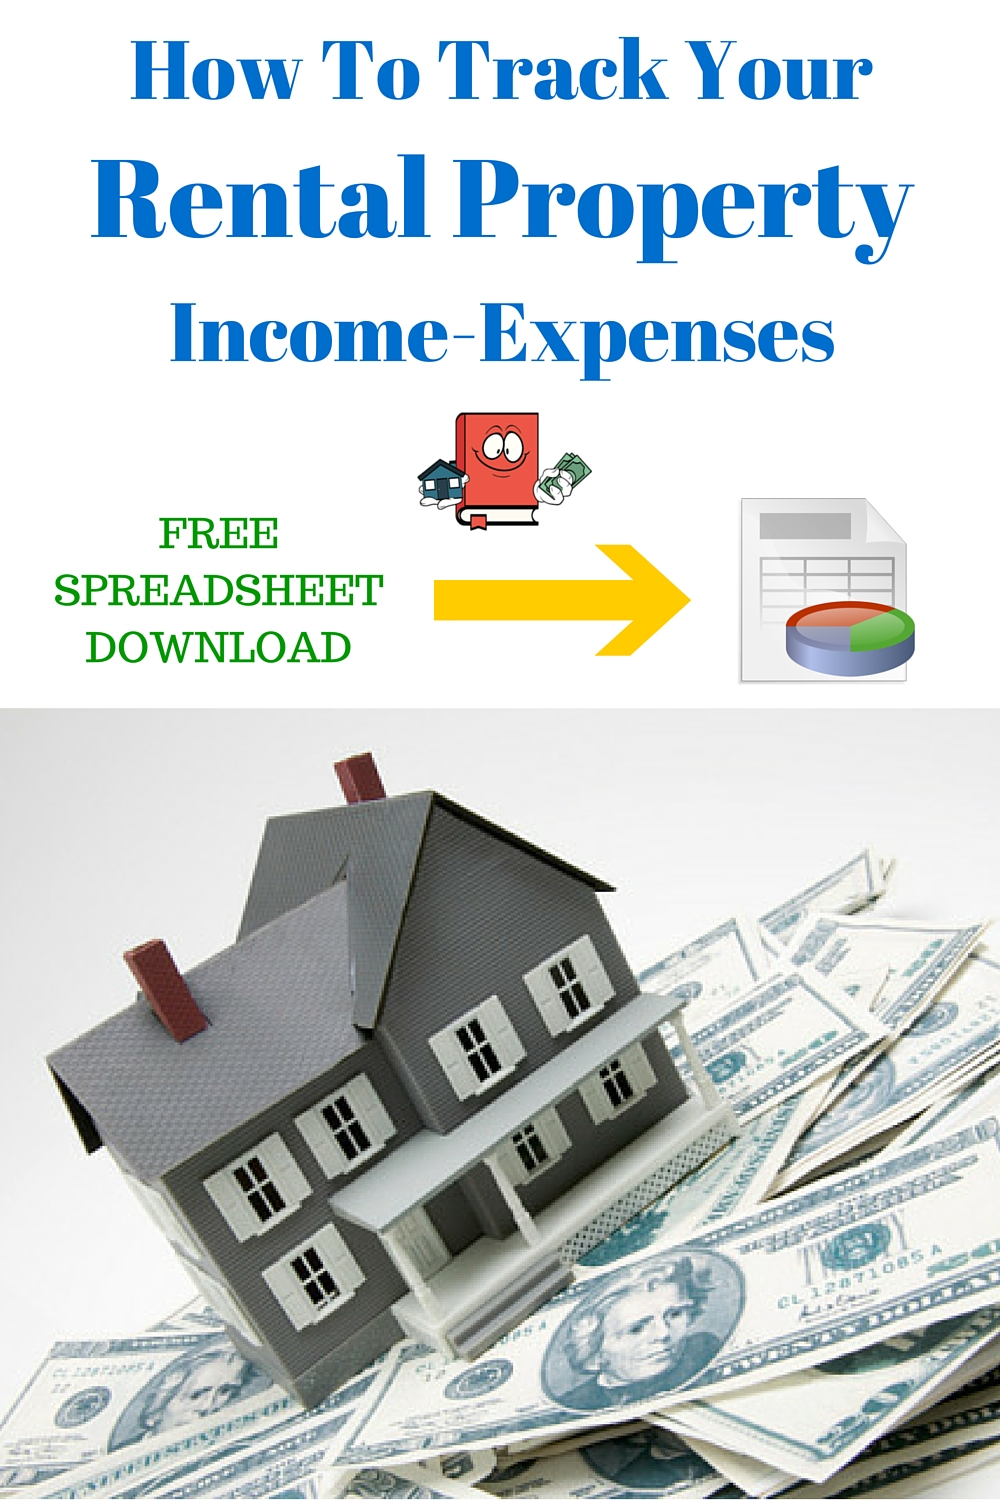 Rental Property Income Expense Spreadsheet With How To Keep Track Of Rental Property Expenses